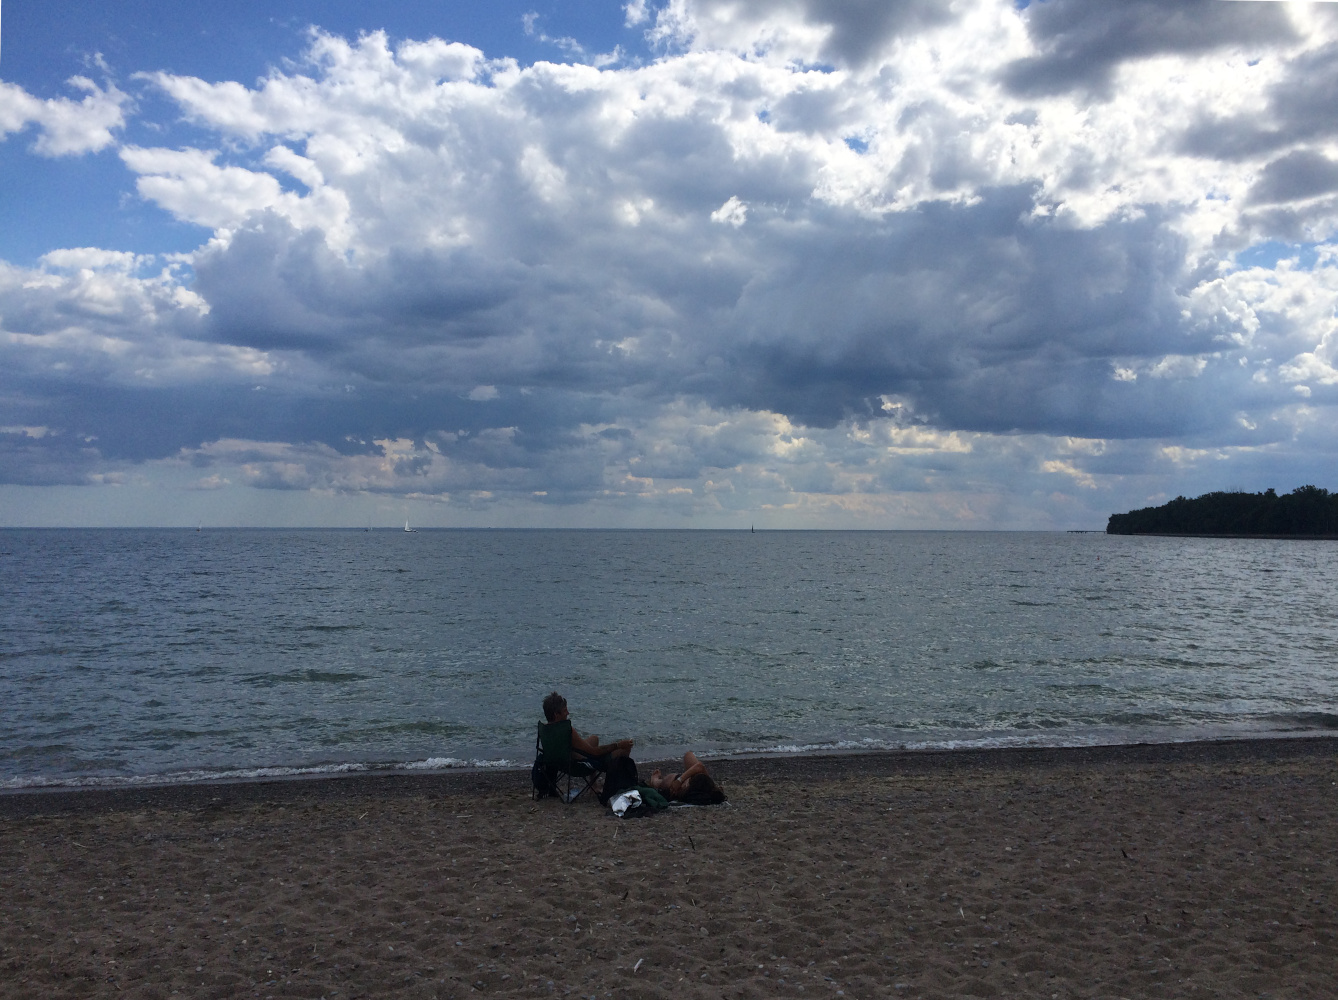 The clouds and water off Wards Island Beach